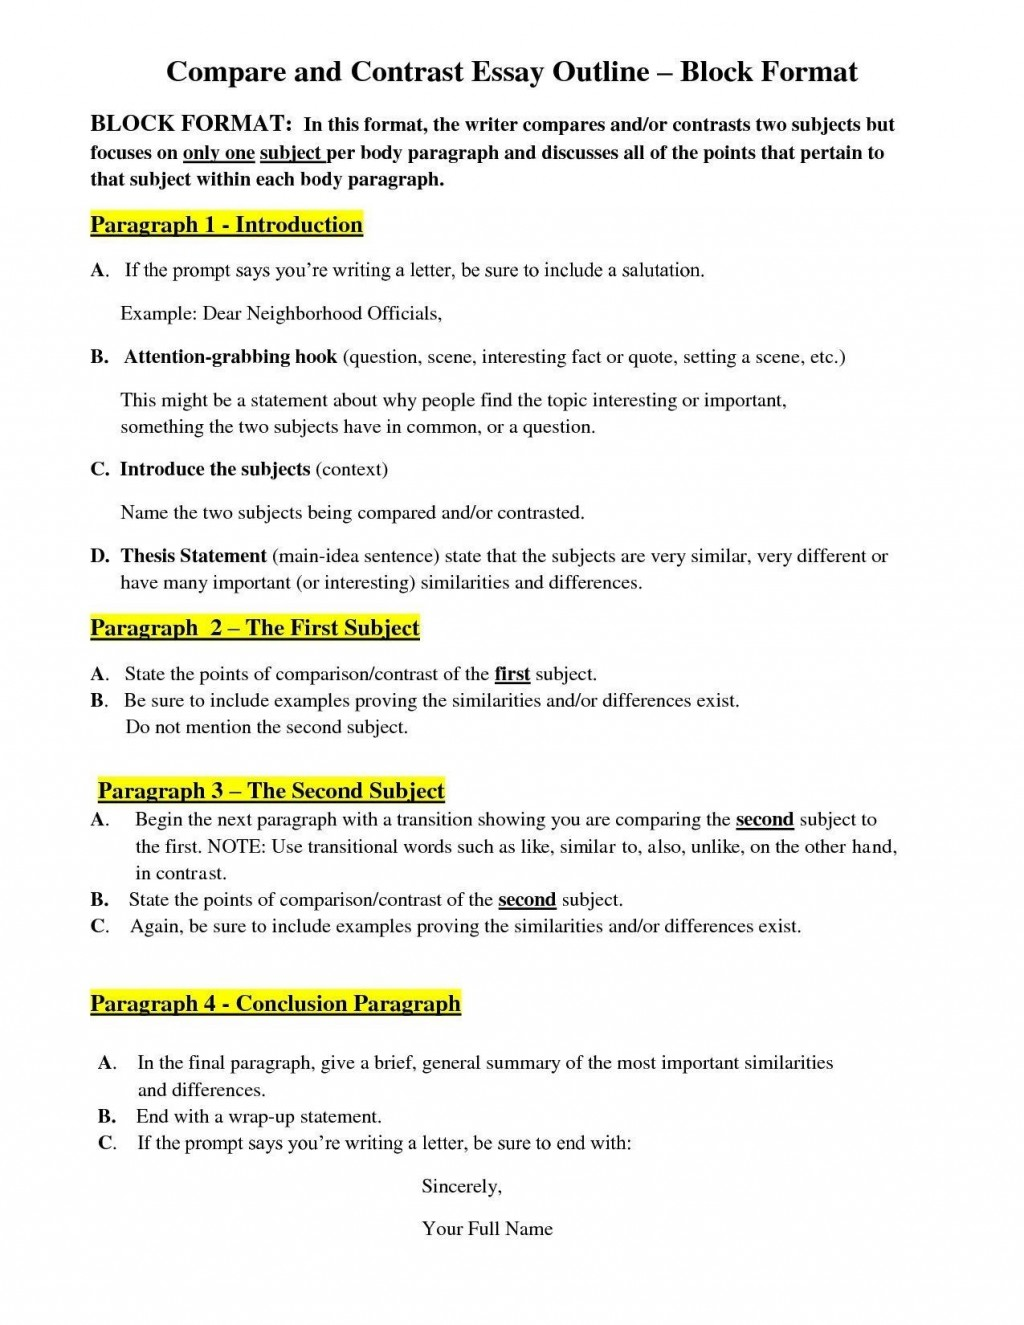 014 Essay Examplempare Andntrastmparison Best Examples Of Scenario In 6th Grade An Goo 3rd Food 5th Middle School Block Format Pdf High 4th Vs Striking Compare And Contrast Example For College Outline Large